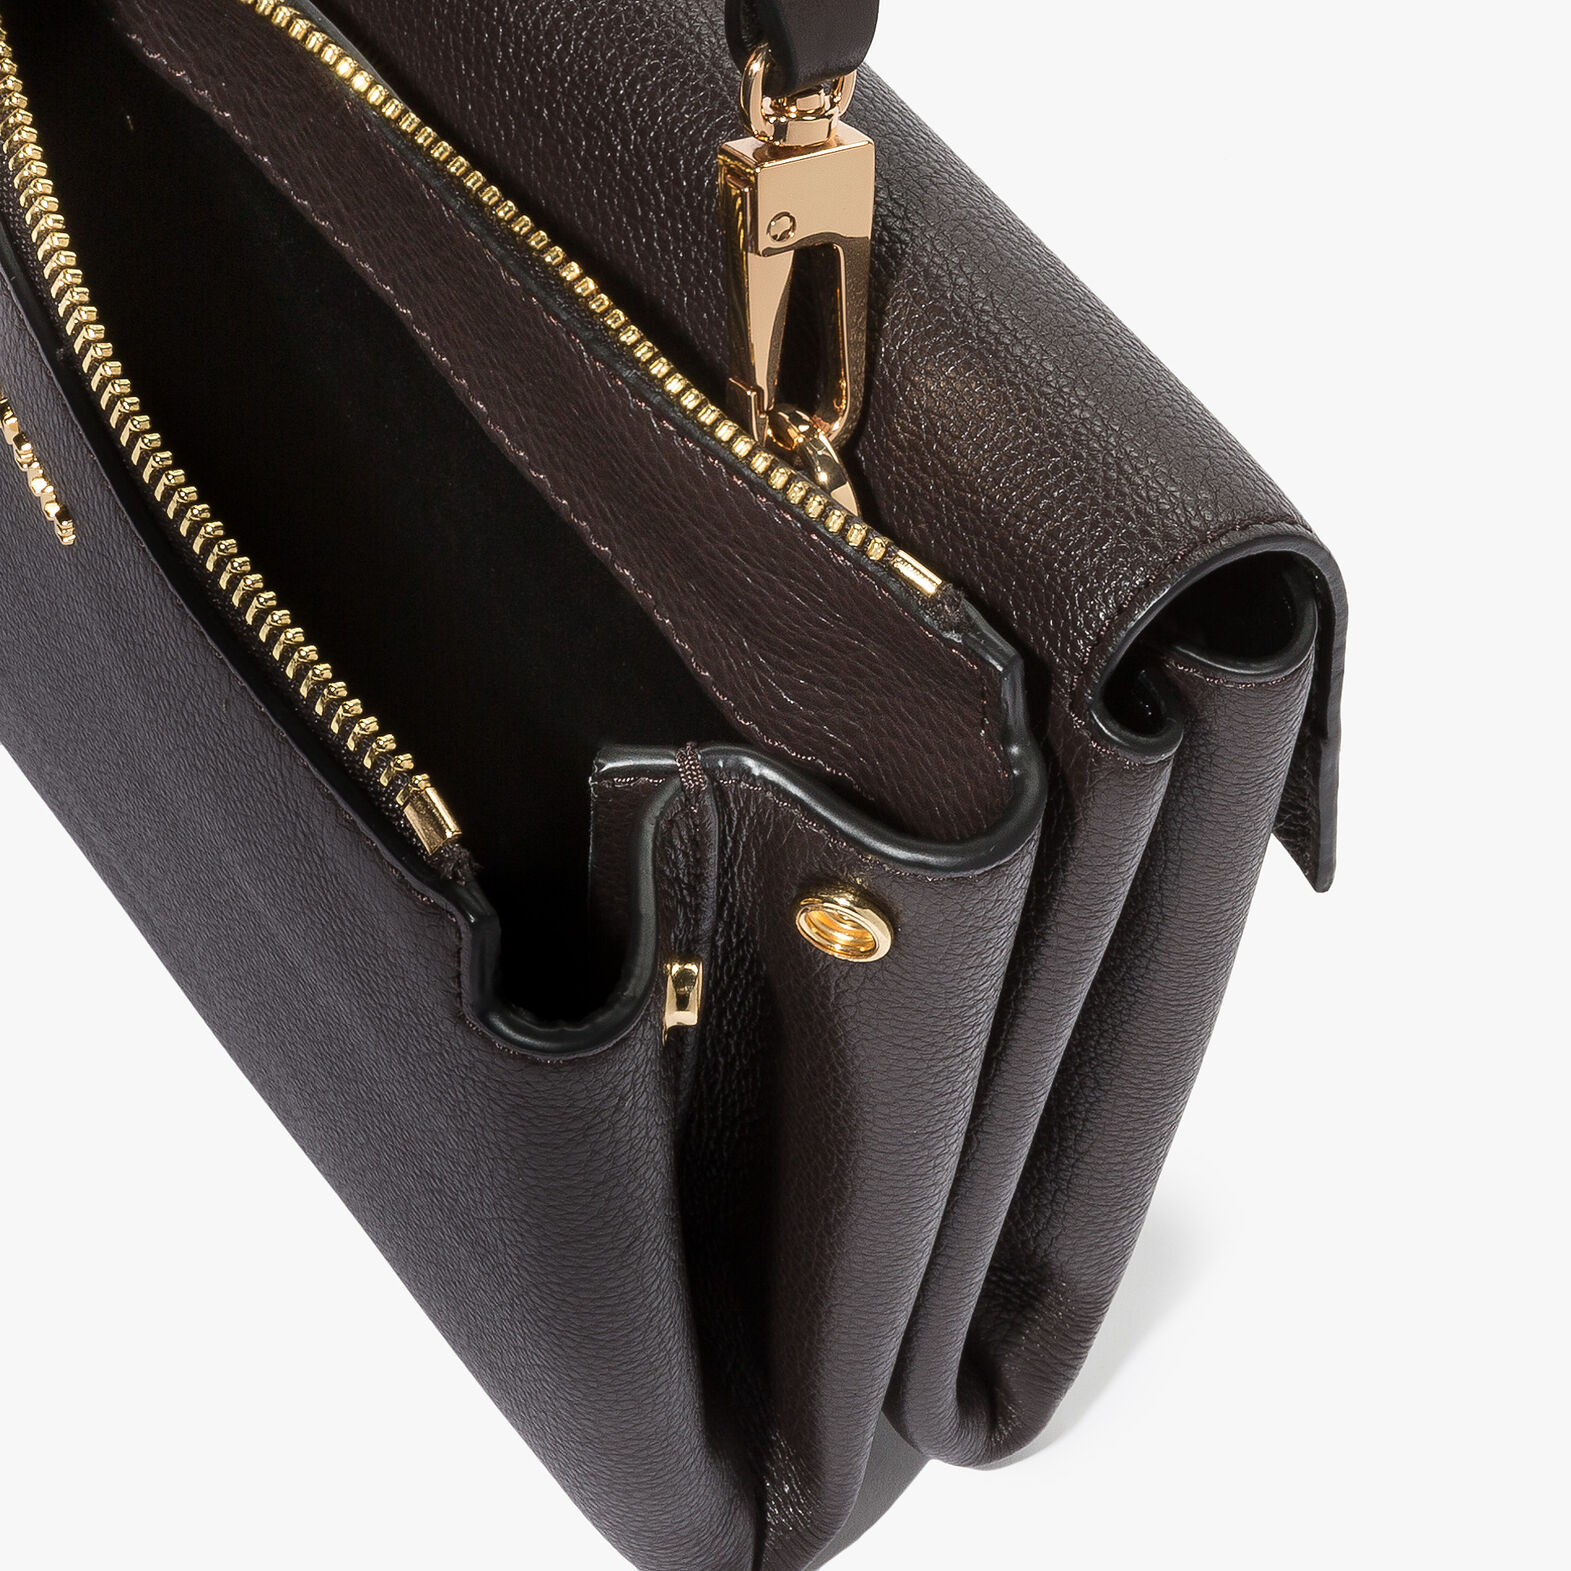 Arlettis leather mini bag